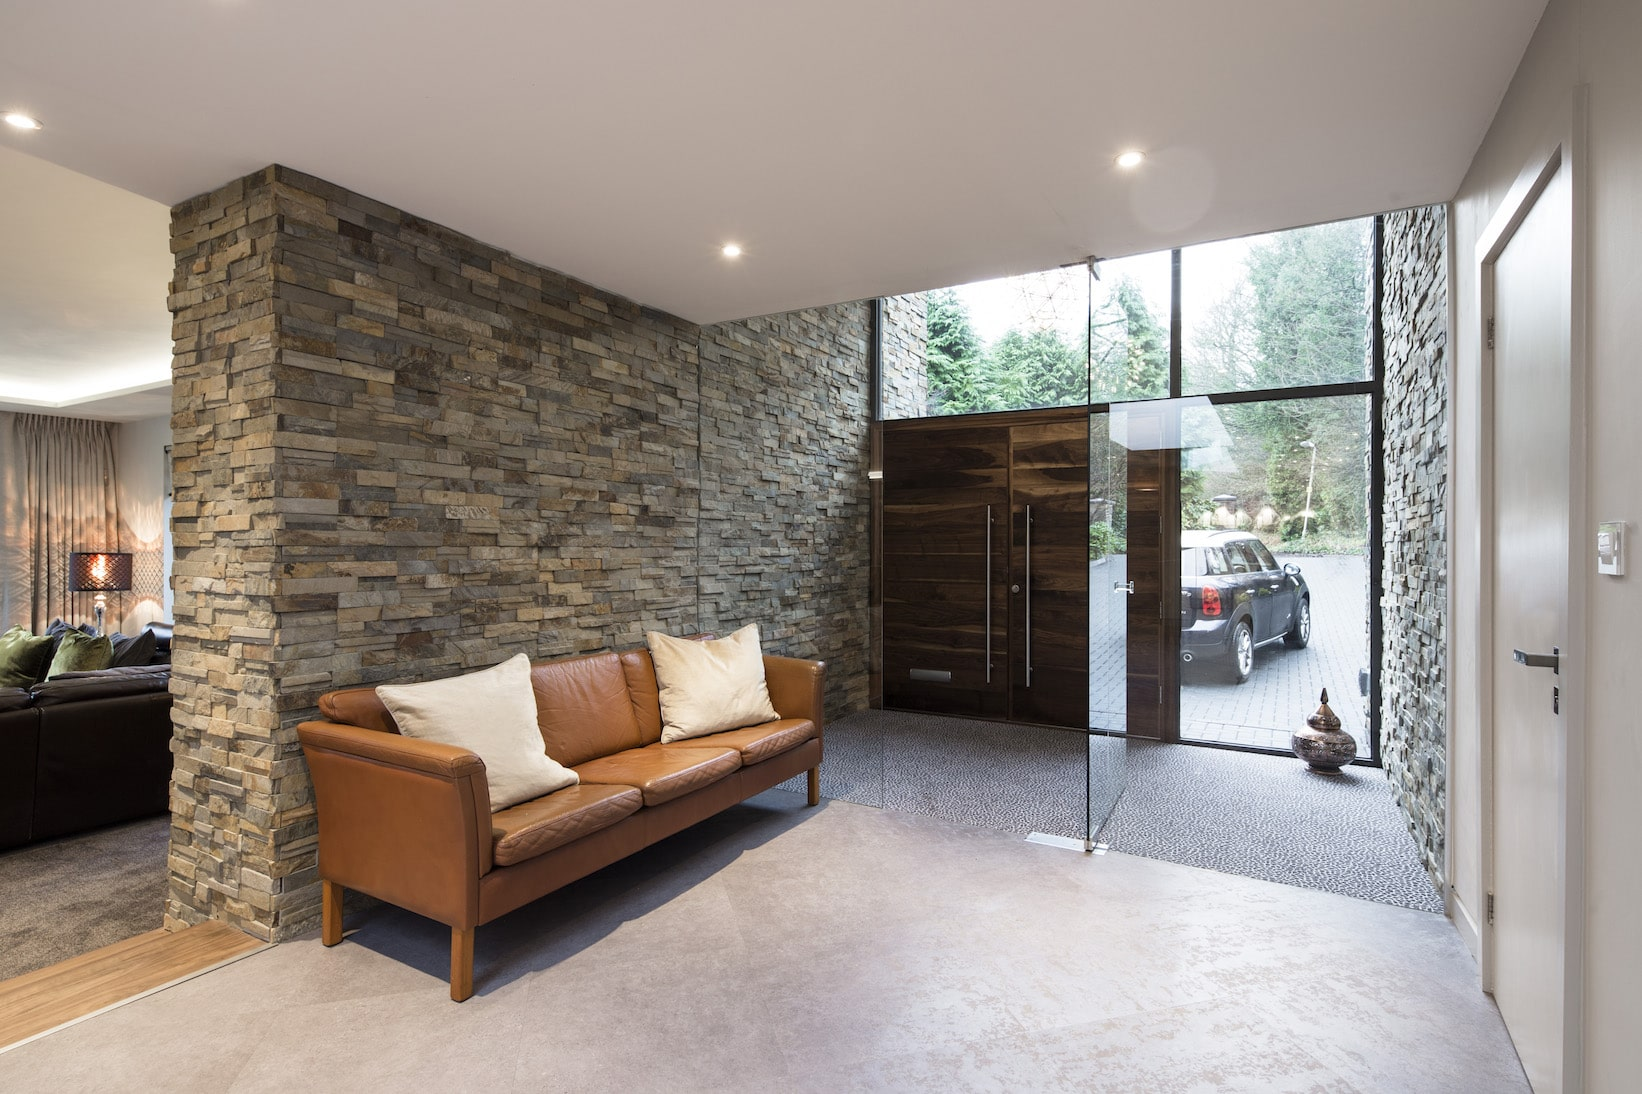 Norstone Ochre Slimline used on a residential project in the UK with both interior and exterior stone walls